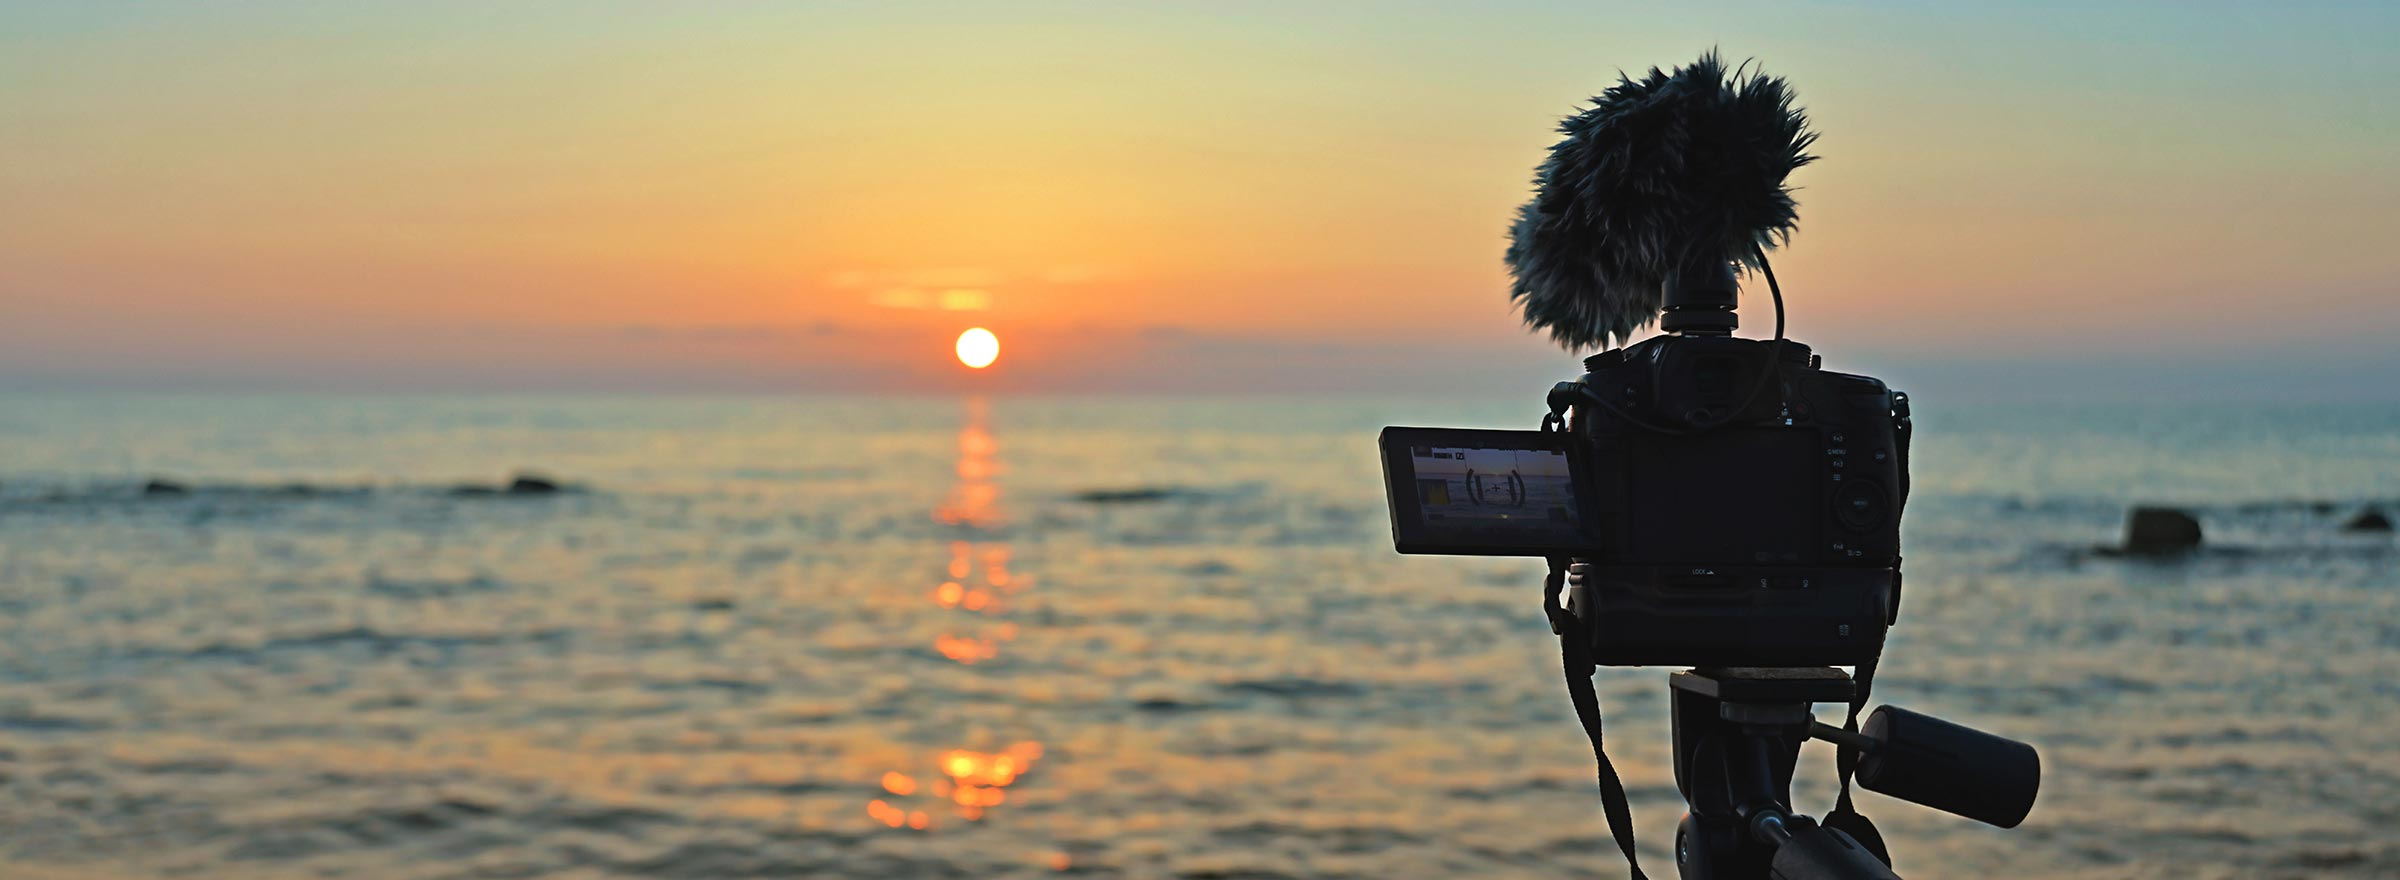 camera on tripod and supporting microphone points over the water to a setting or rising sun